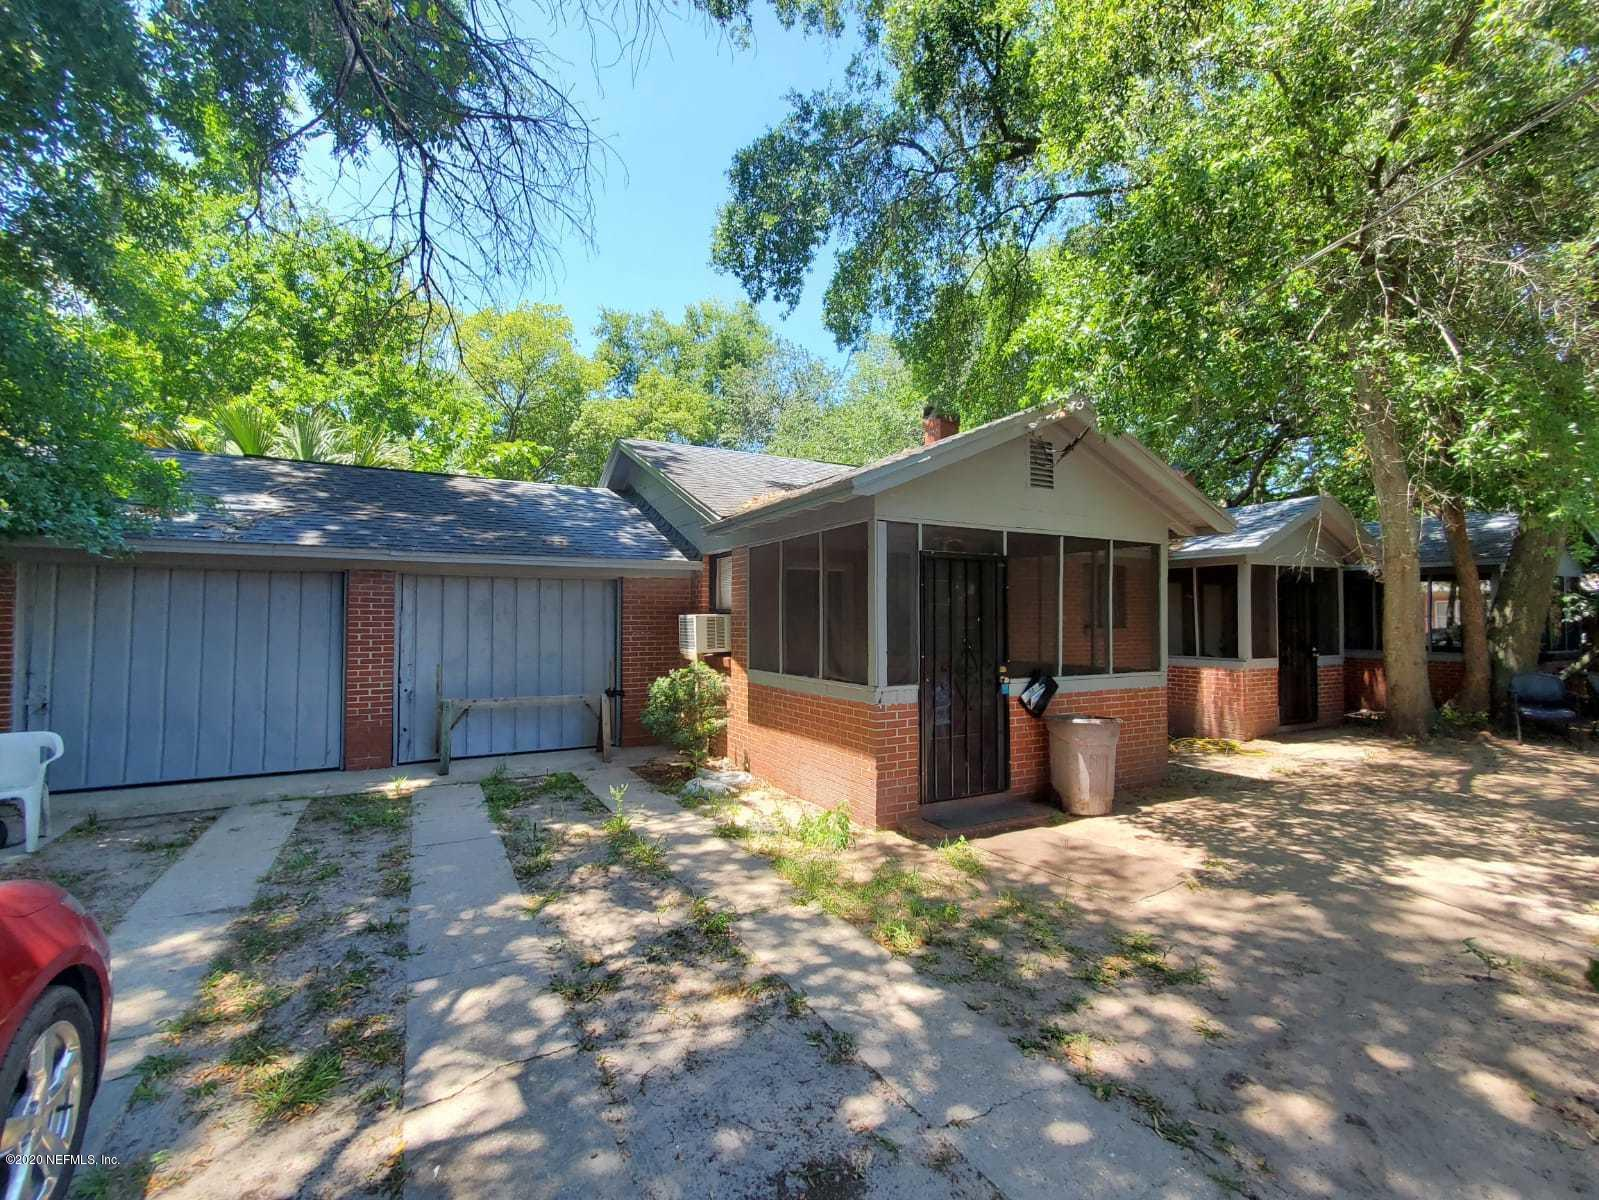 3926 PERRY, JACKSONVILLE, FLORIDA 32206, 2 Bedrooms Bedrooms, ,2 BathroomsBathrooms,Investment / MultiFamily,For sale,PERRY,1061279